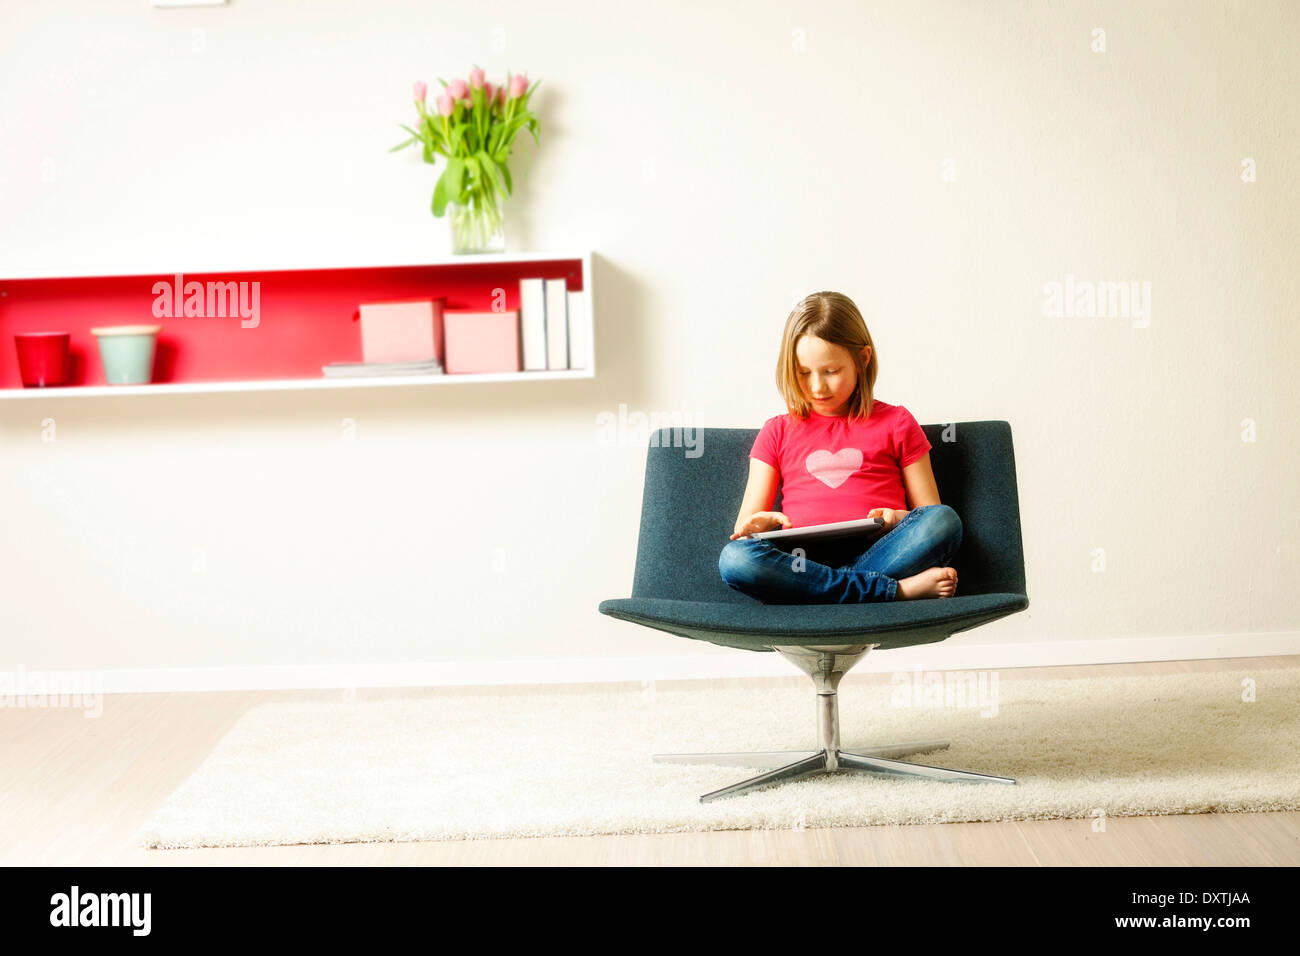 Girl sits in chair using tablet computer, Munich, Bavaria, Germany - Stock Image